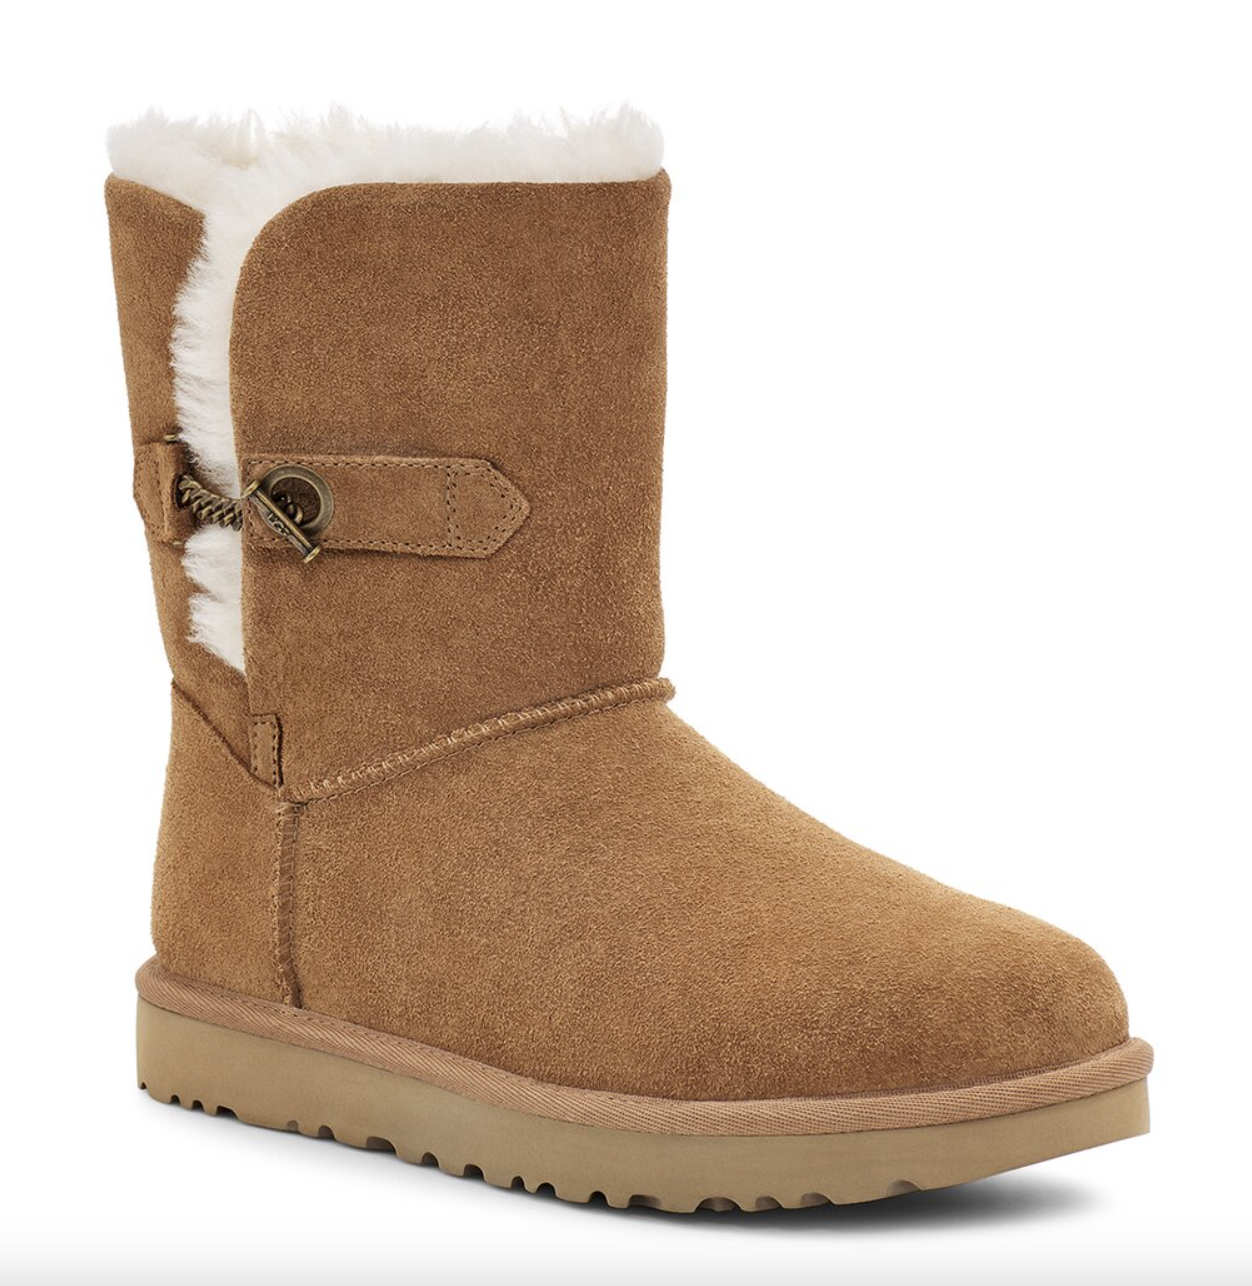 Shop Premium Outlets: Up to 55% off UGG